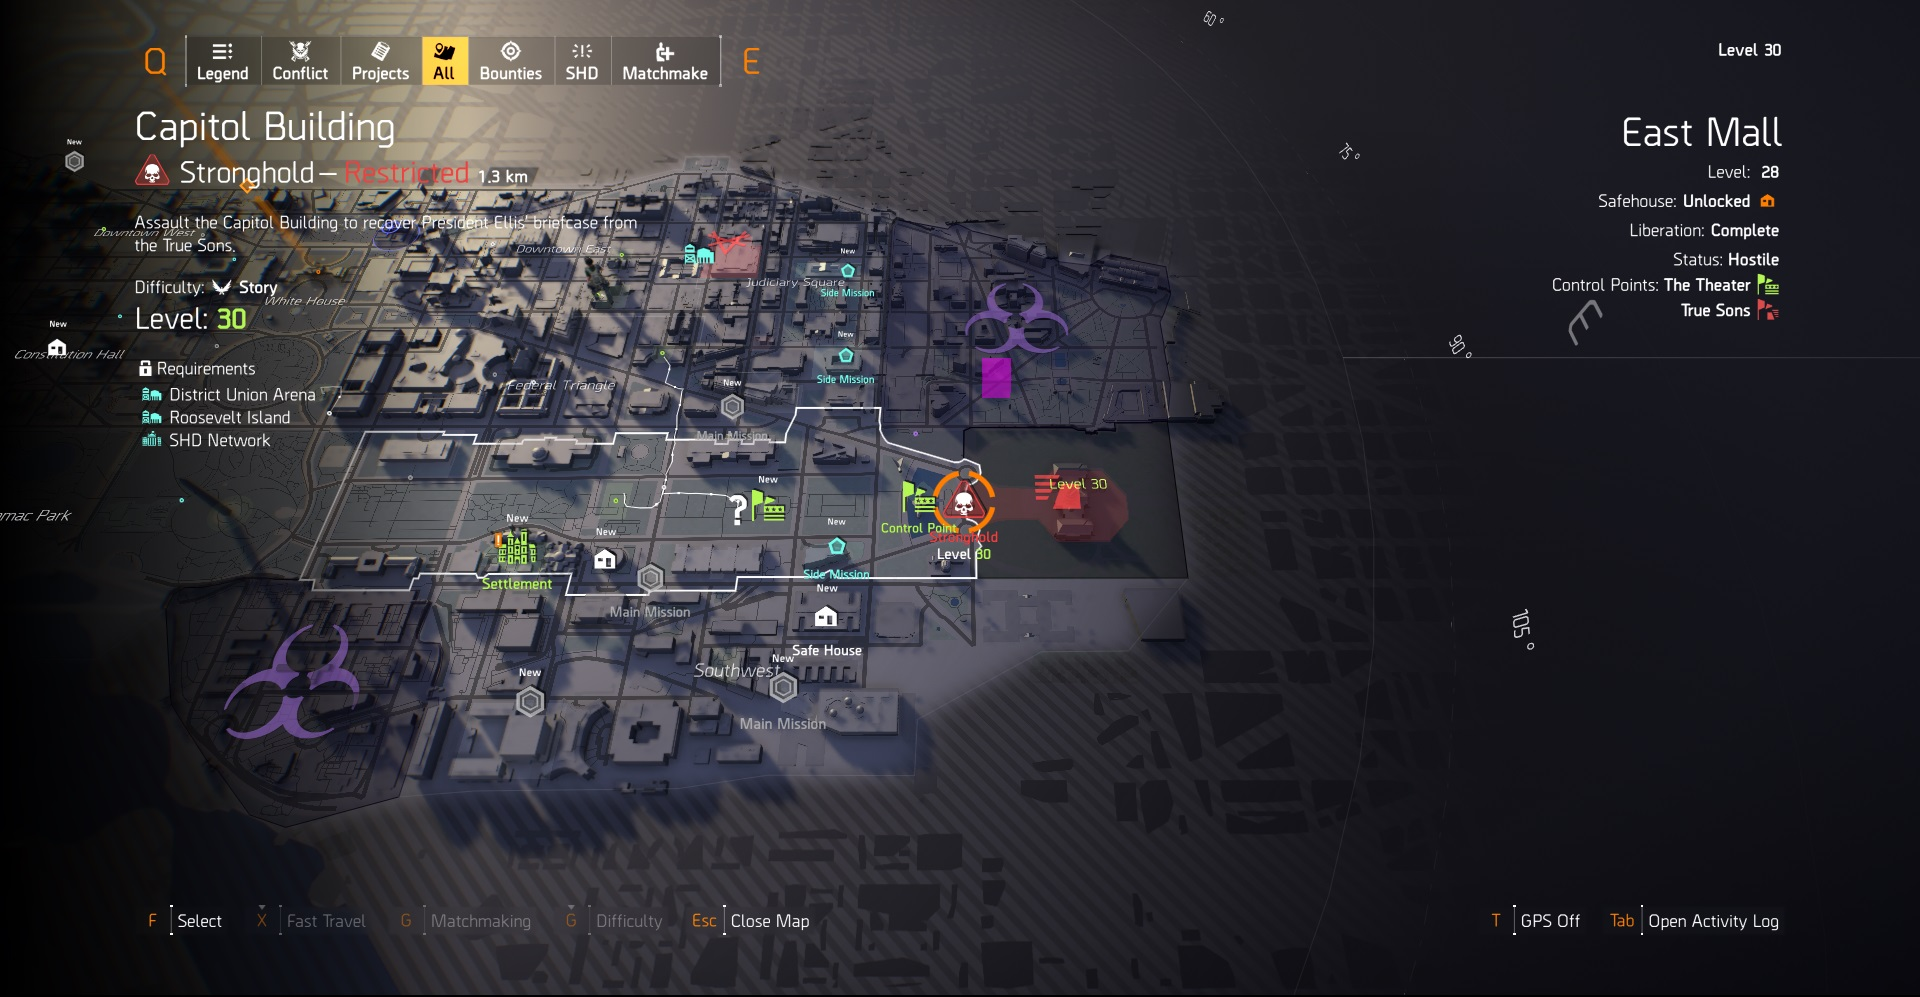 Undiscovered Missions when playing in Multiplayer | The